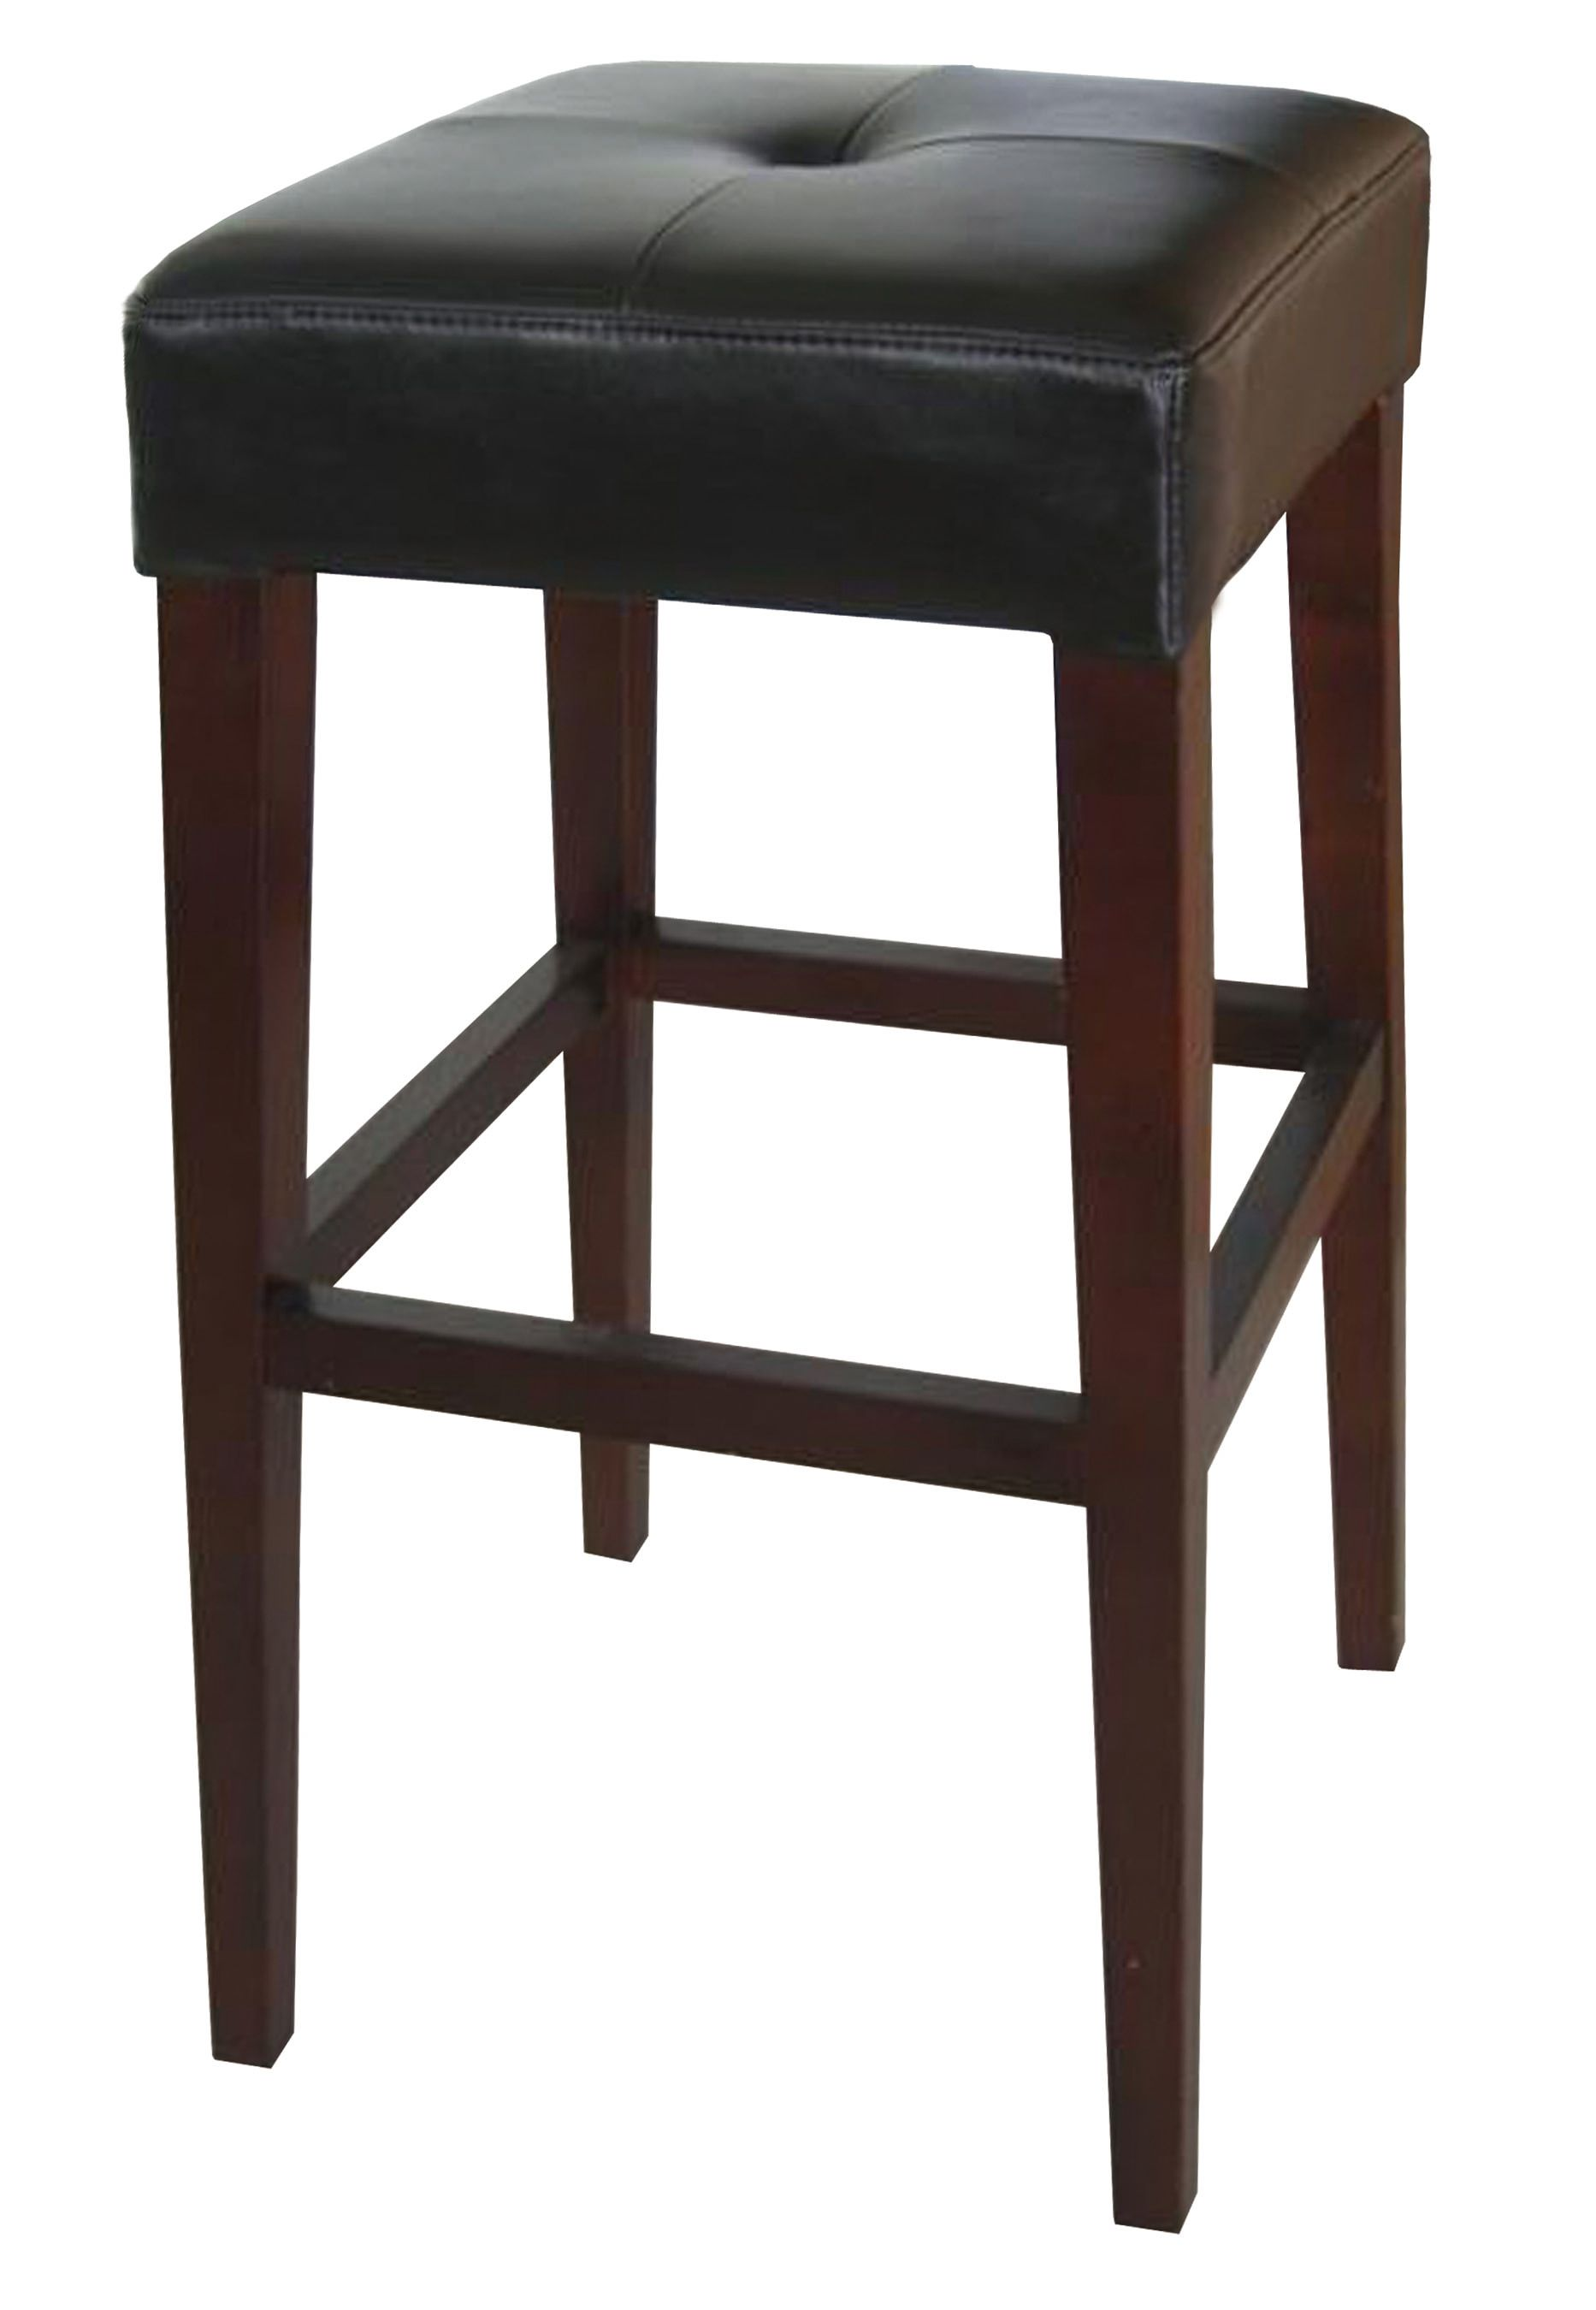 Marvelous photograph of Leather and wood bar stool Chairs by LH Imports Pinterest with #5E493D color and 1866x2700 pixels